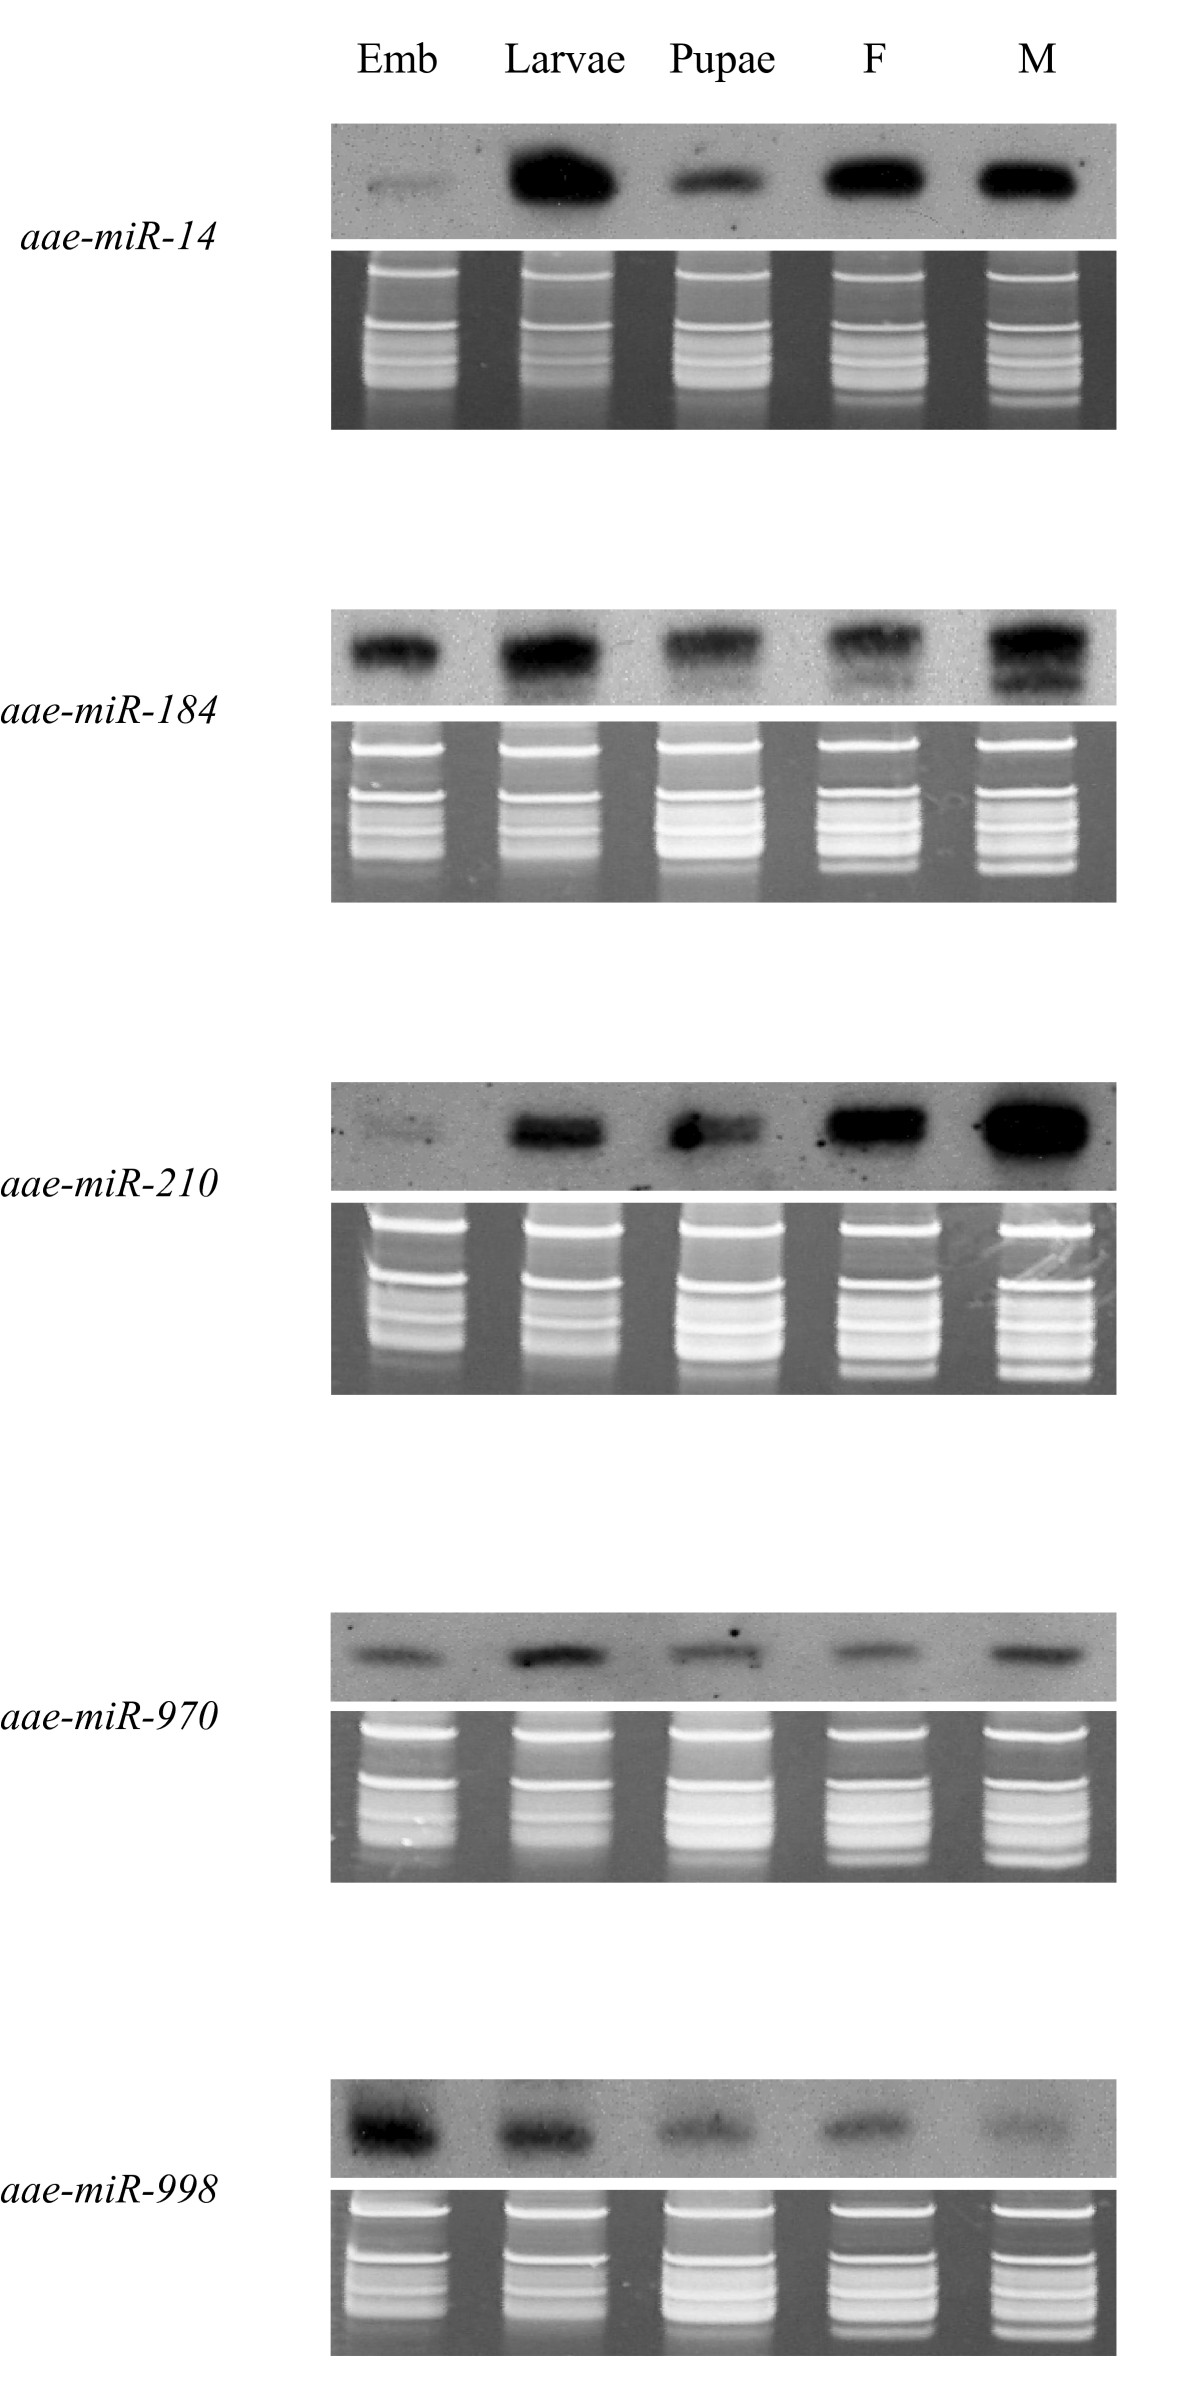 http://static-content.springer.com/image/art%3A10.1186%2F1471-2164-10-581/MediaObjects/12864_2009_Article_2465_Fig3_HTML.jpg